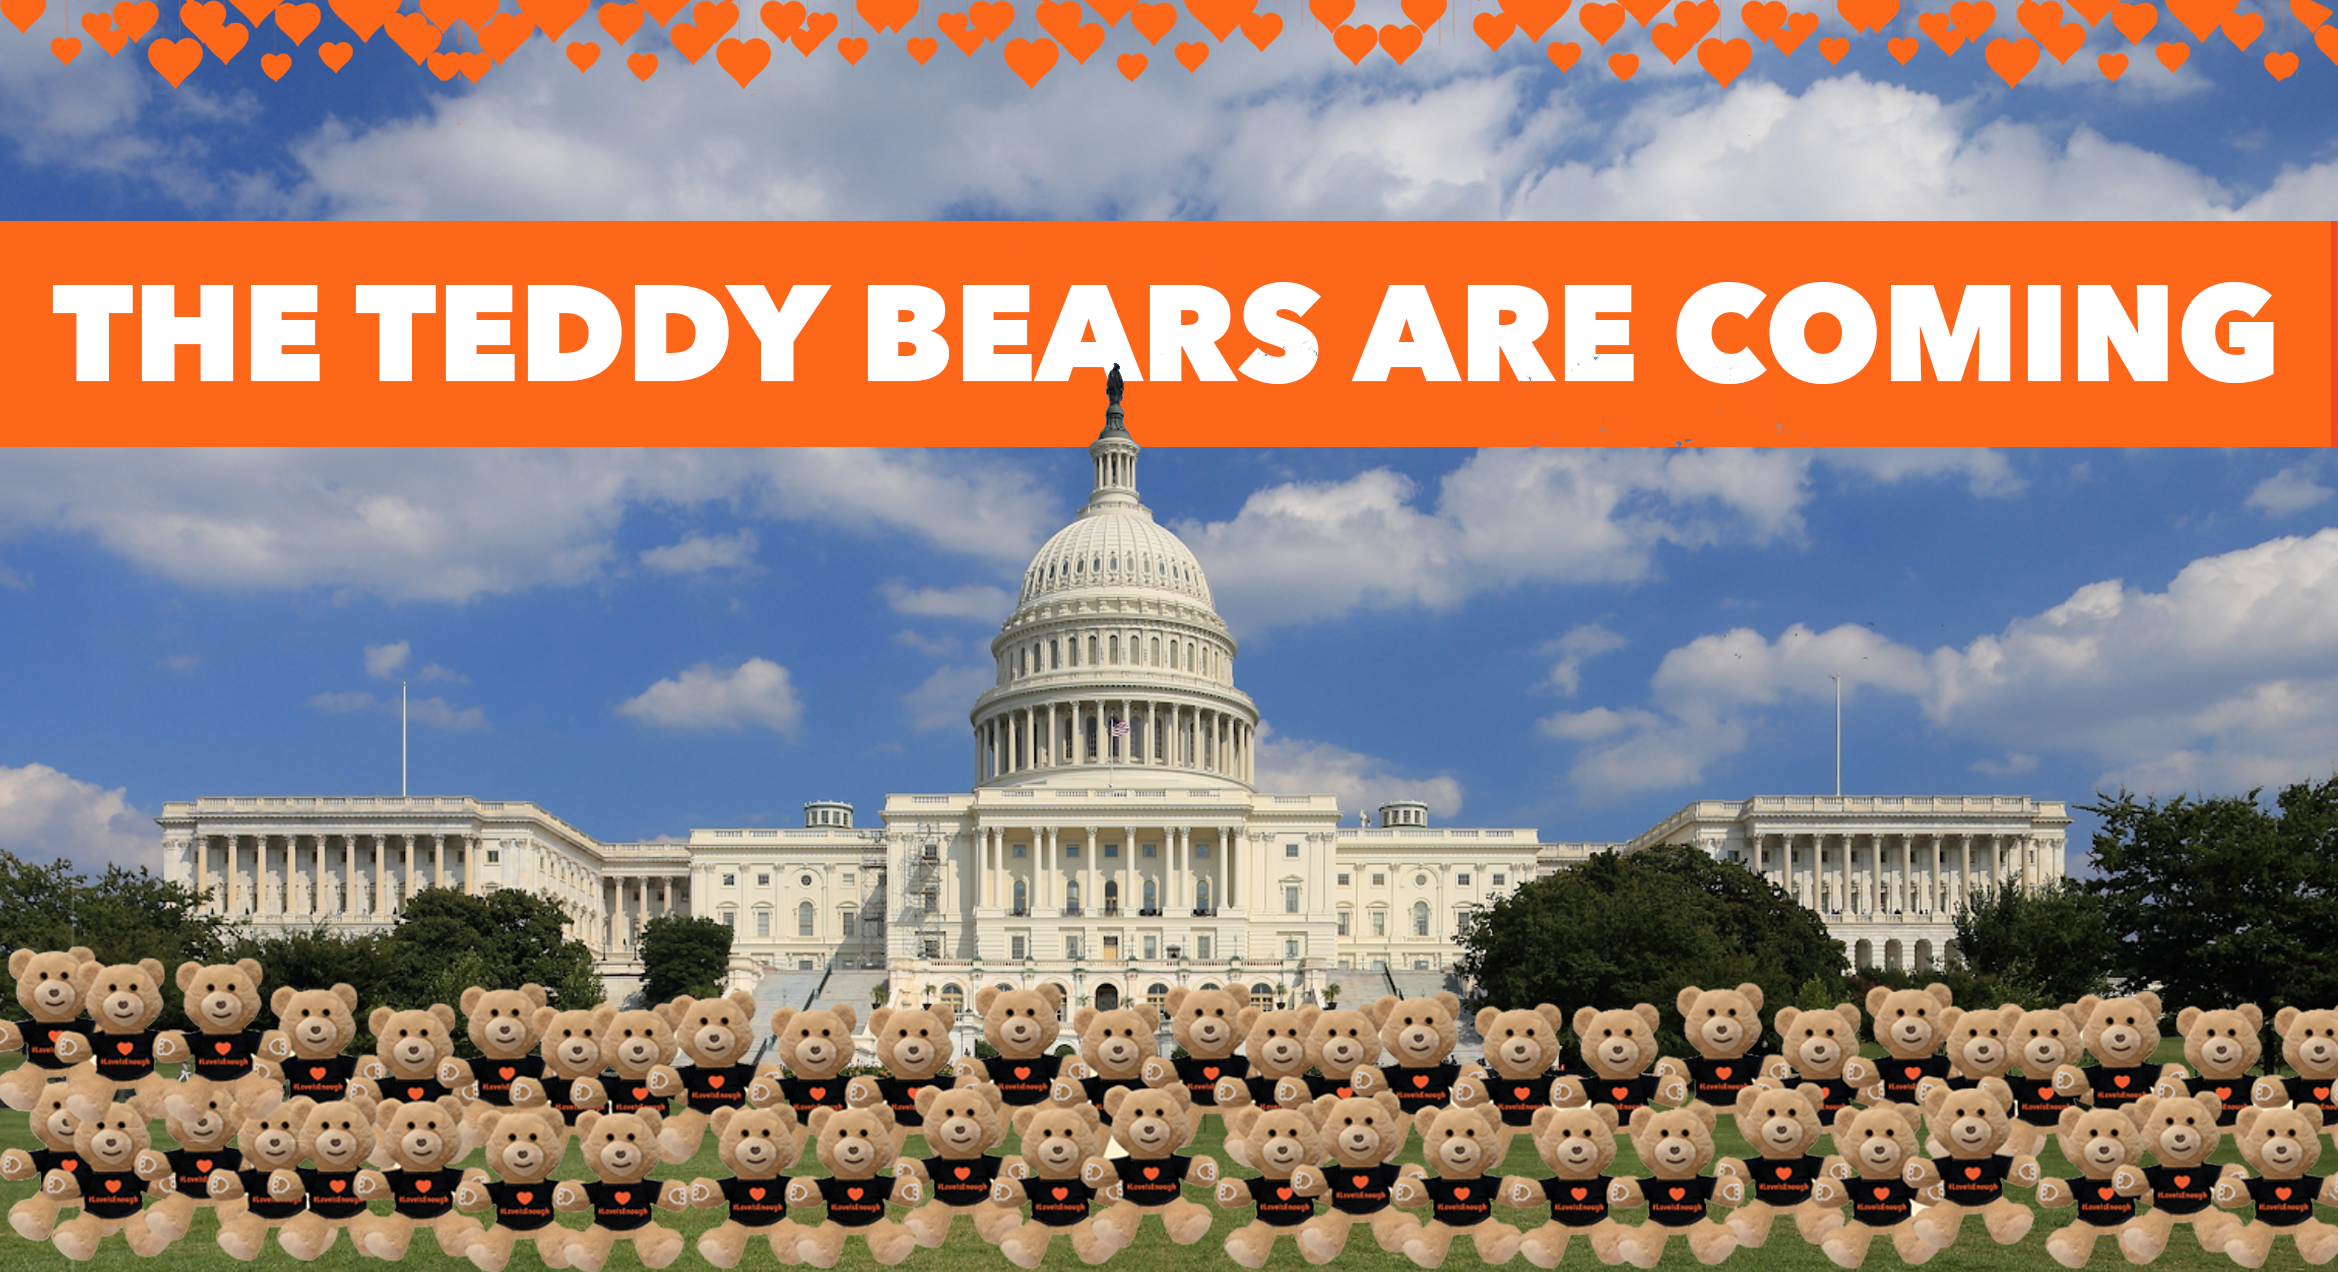 The_teddy_bears_are_coming_billboard-recovered